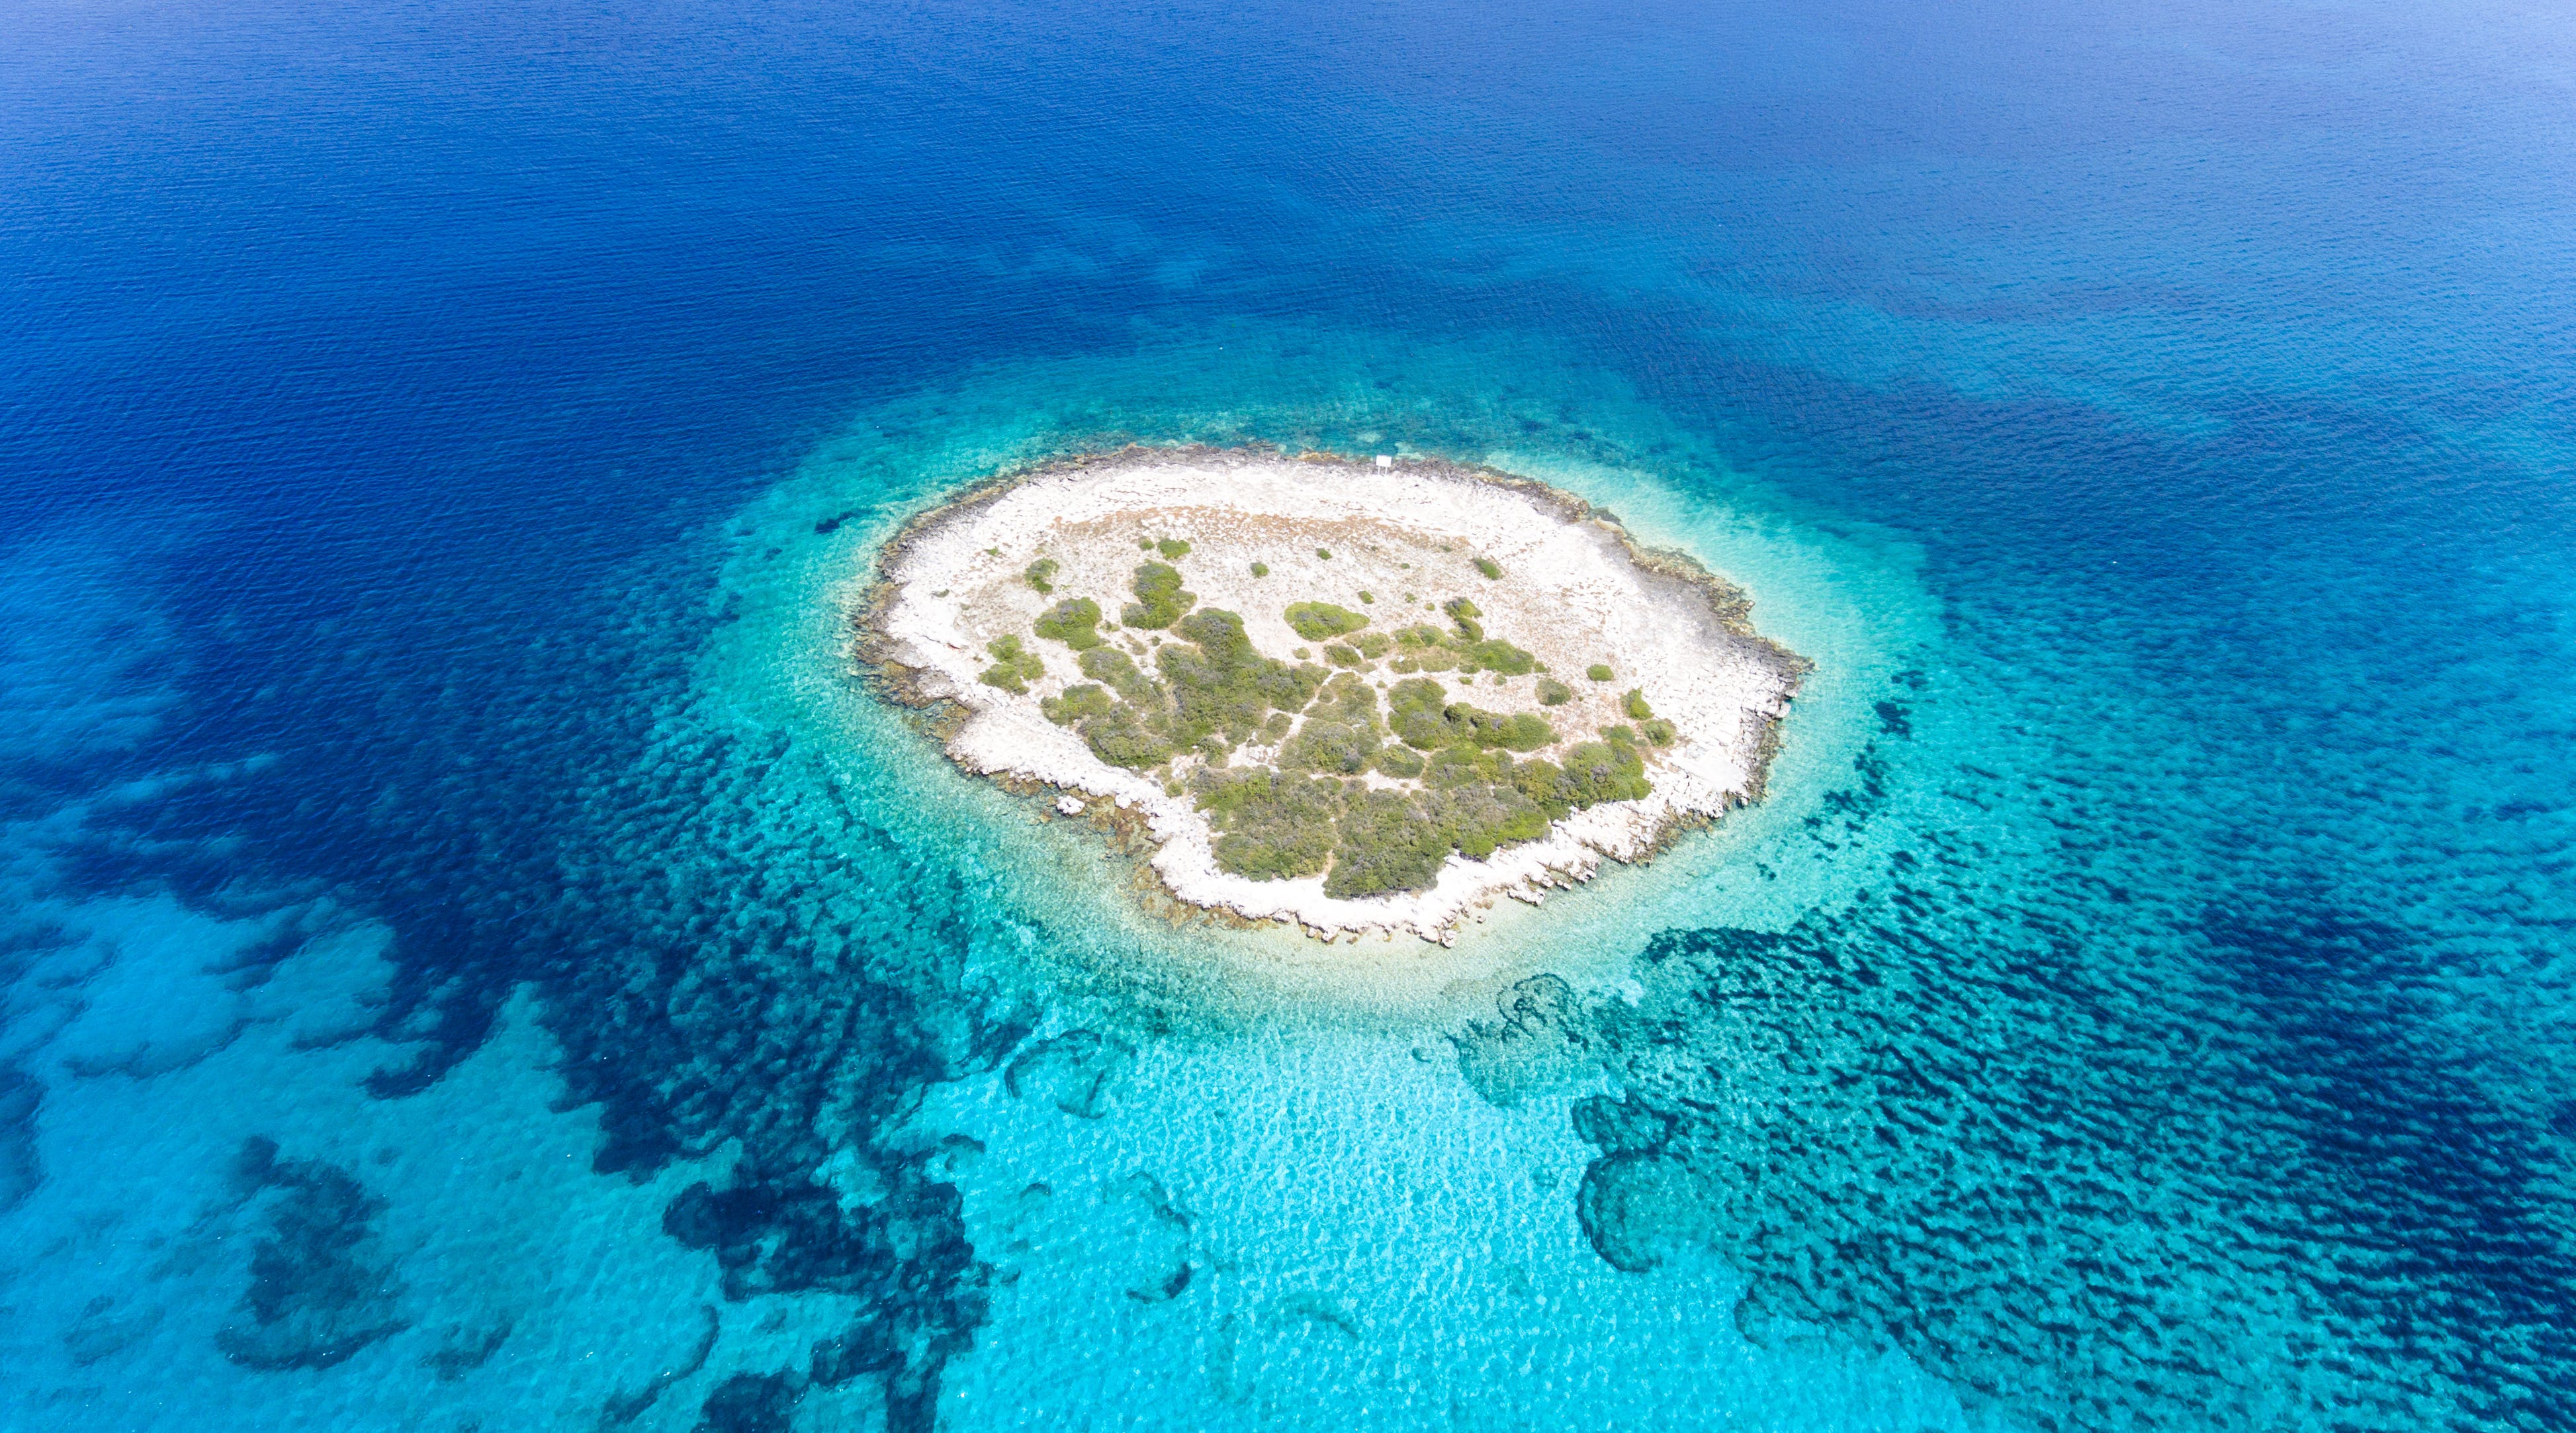 Aerial View Photography of Islet Surround by Body of Water